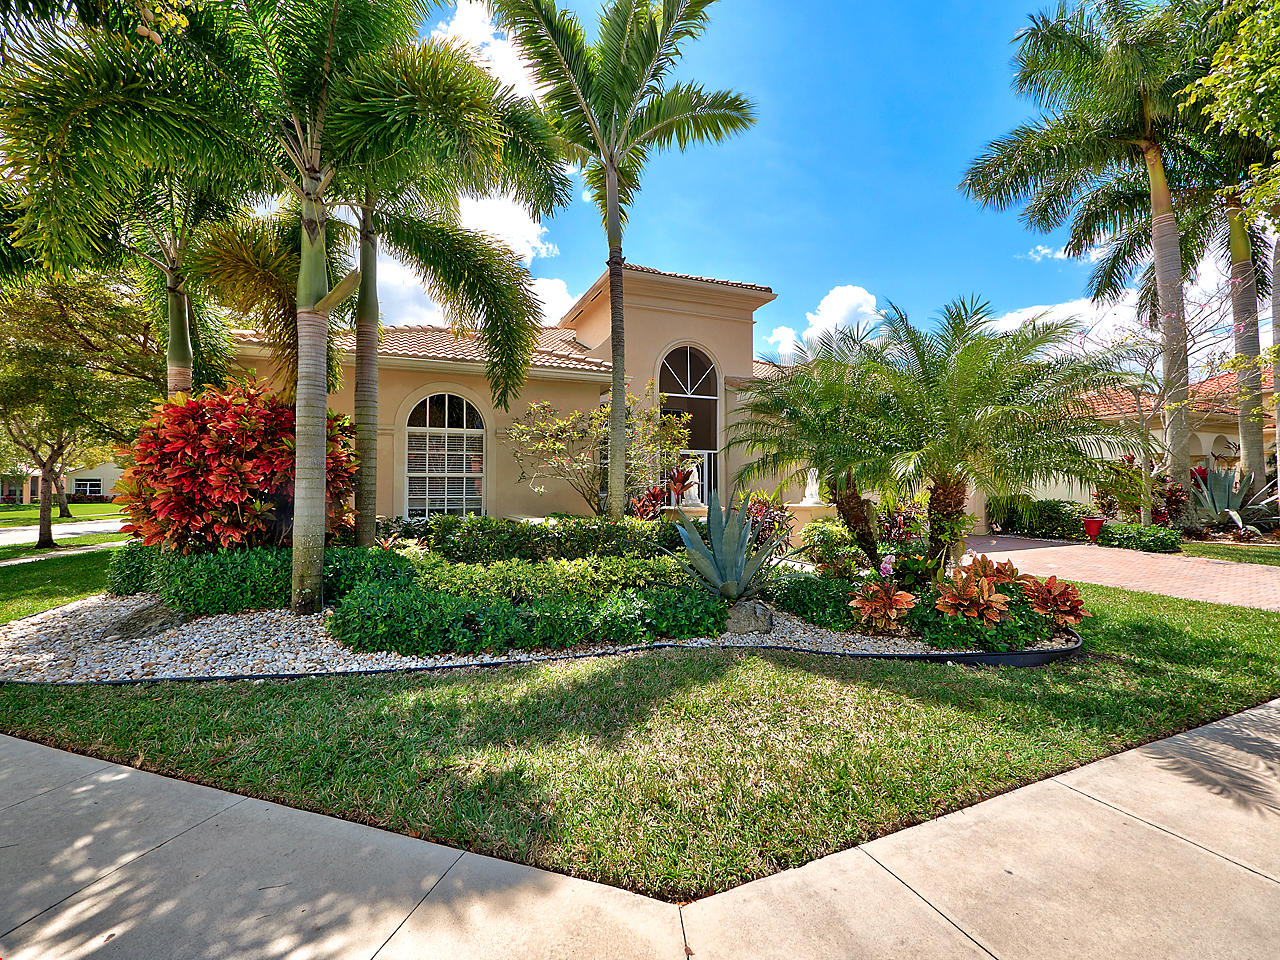 Home for sale in Buena Vida Wellington Florida